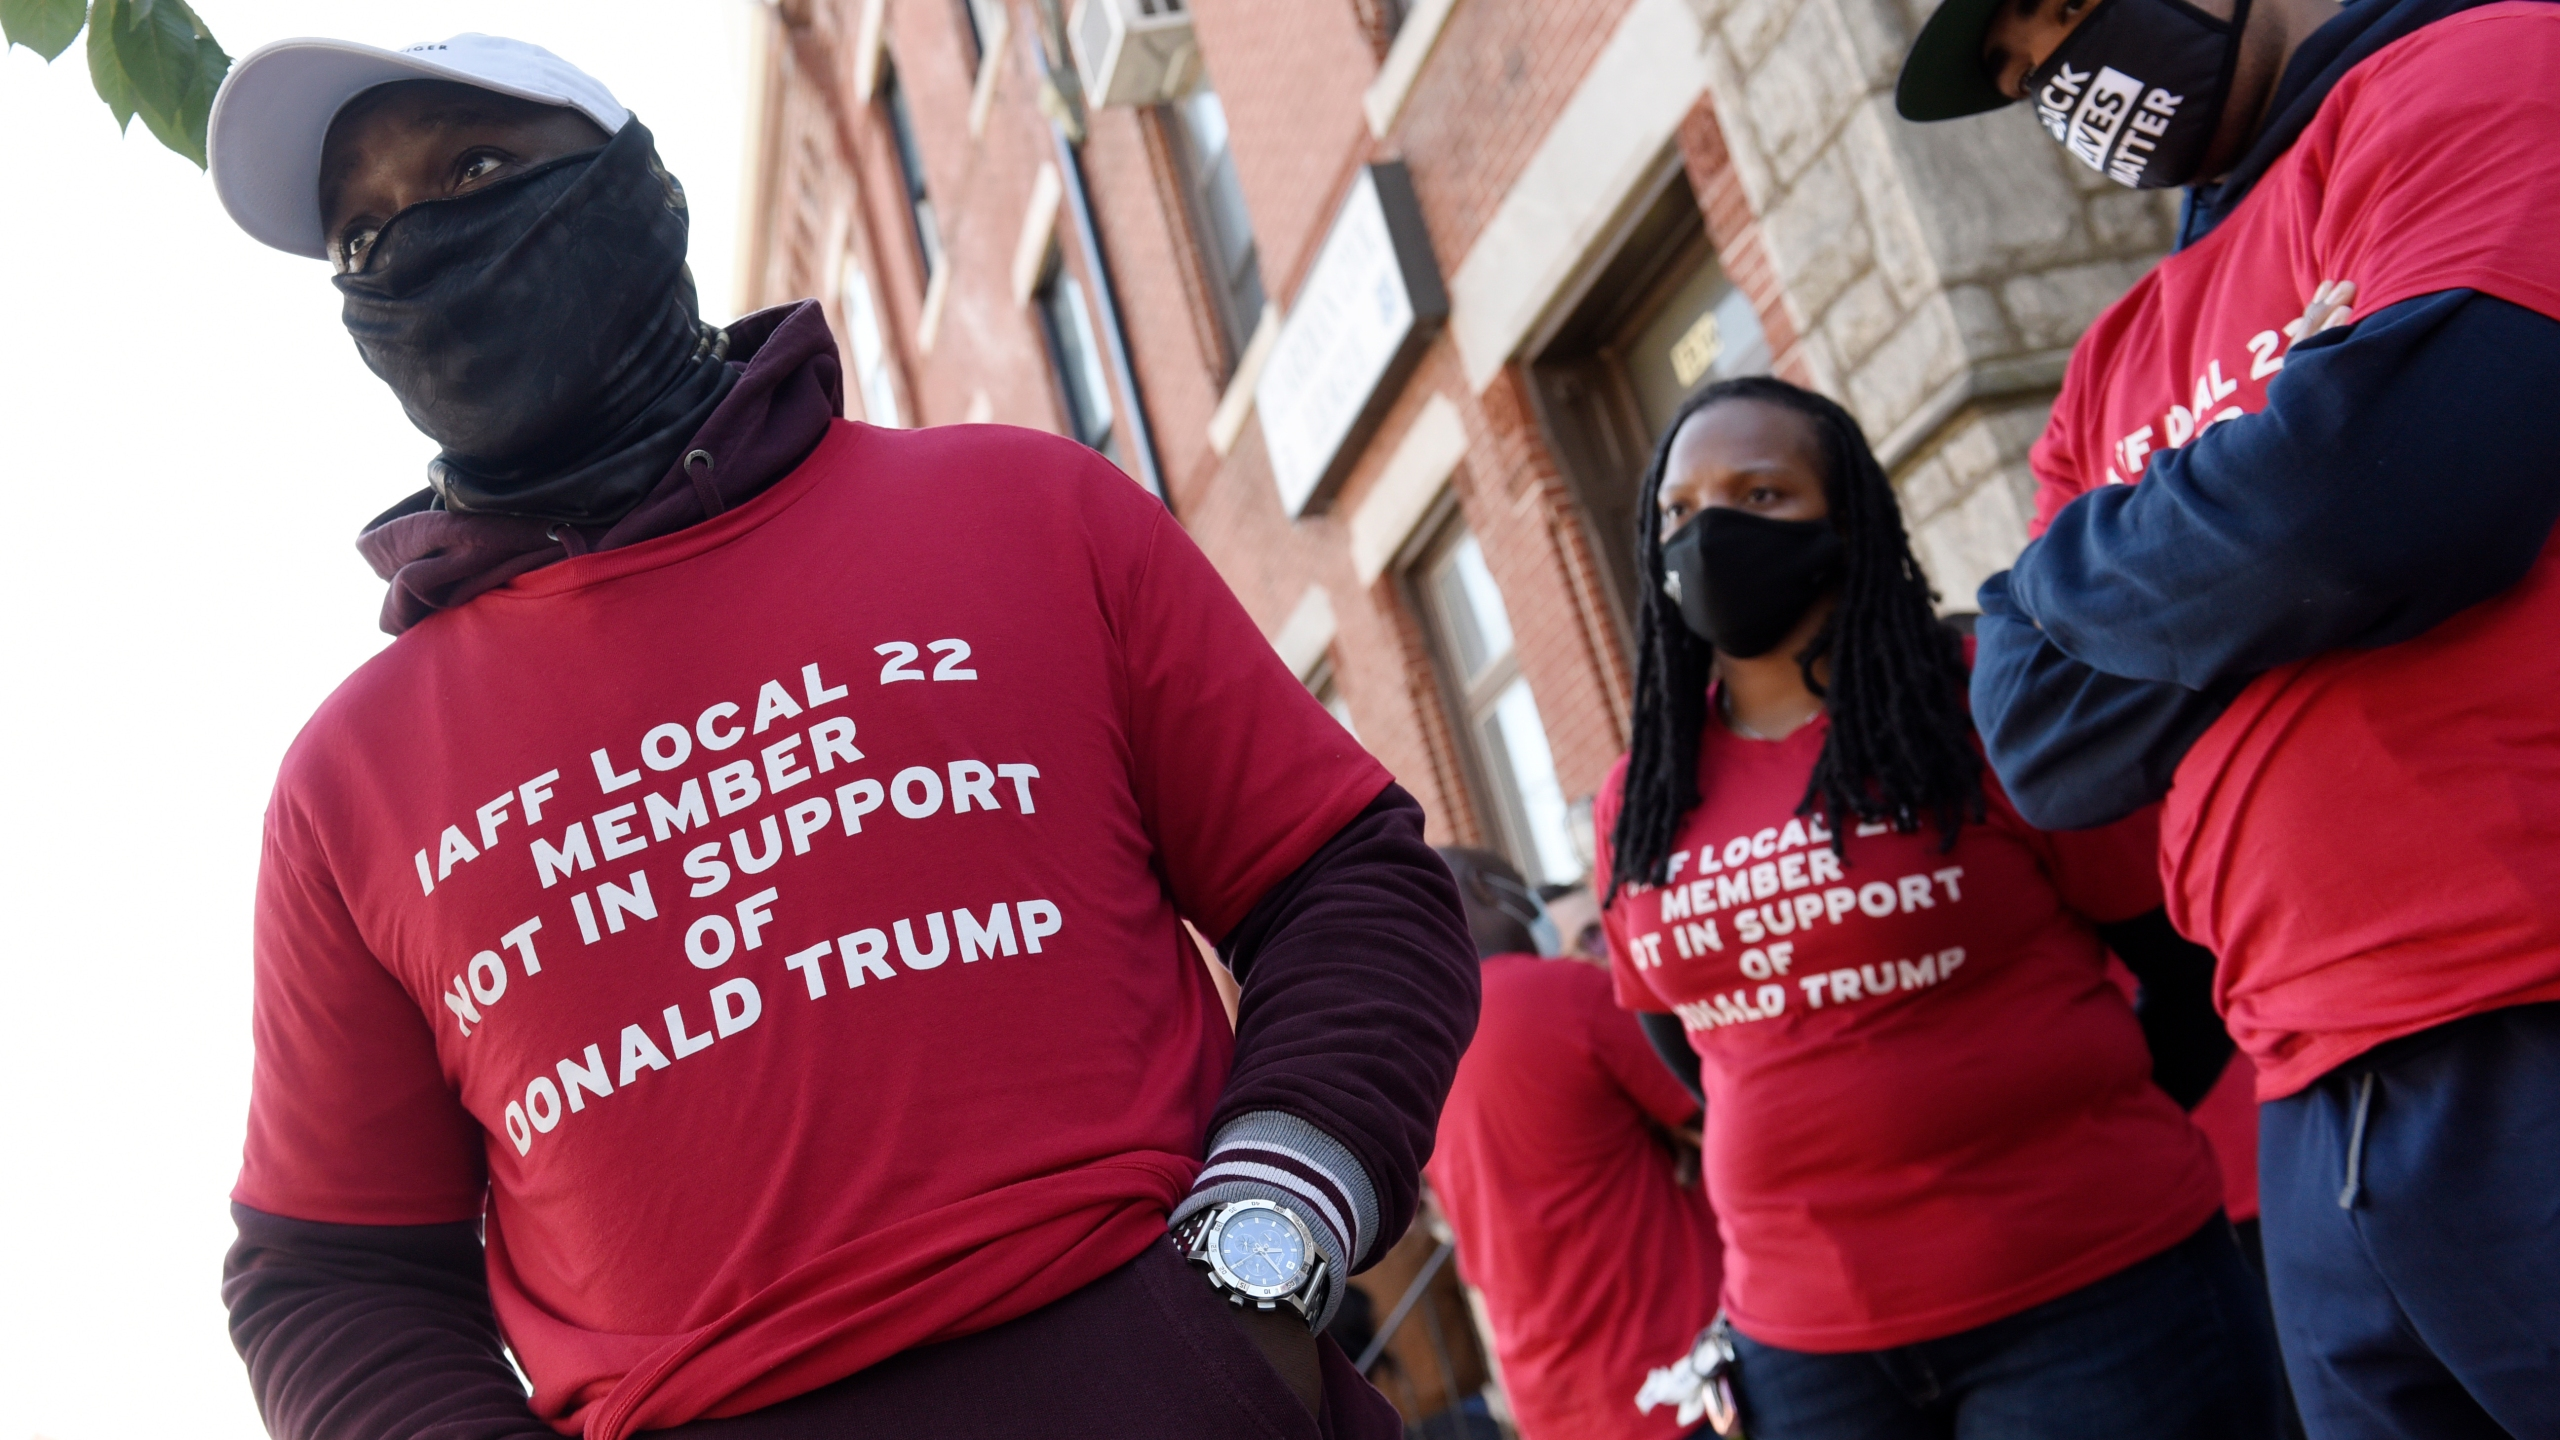 'They don't care about us': Black Police officers break from police unions endorsing President Trump - Tatahfonewsarena